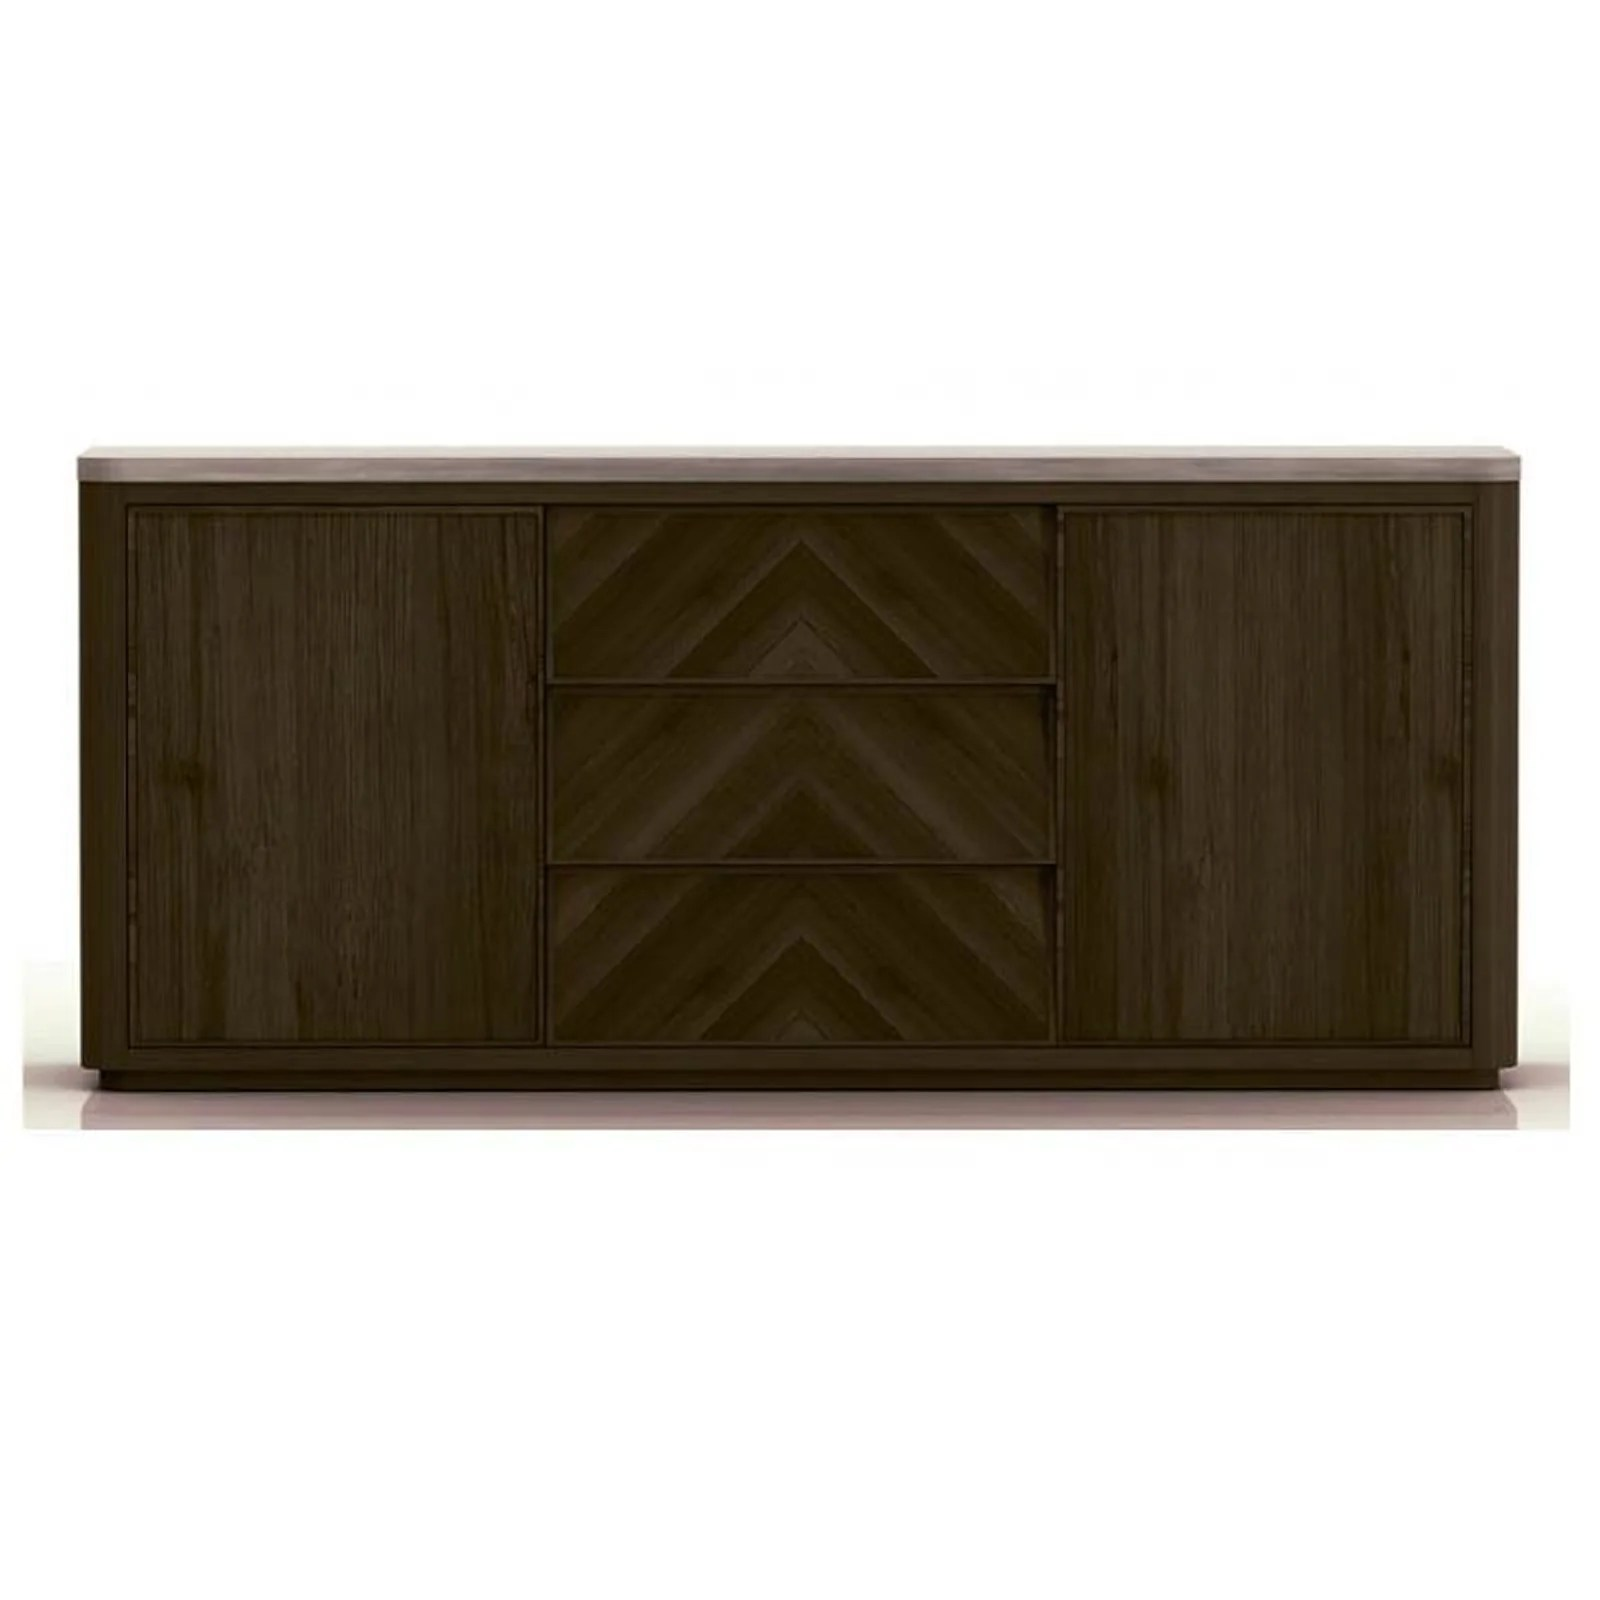 Sideboard Buffet Espresso Apex Buffet Cinder Brushed Acacia Slate Grey Sealed Concrete